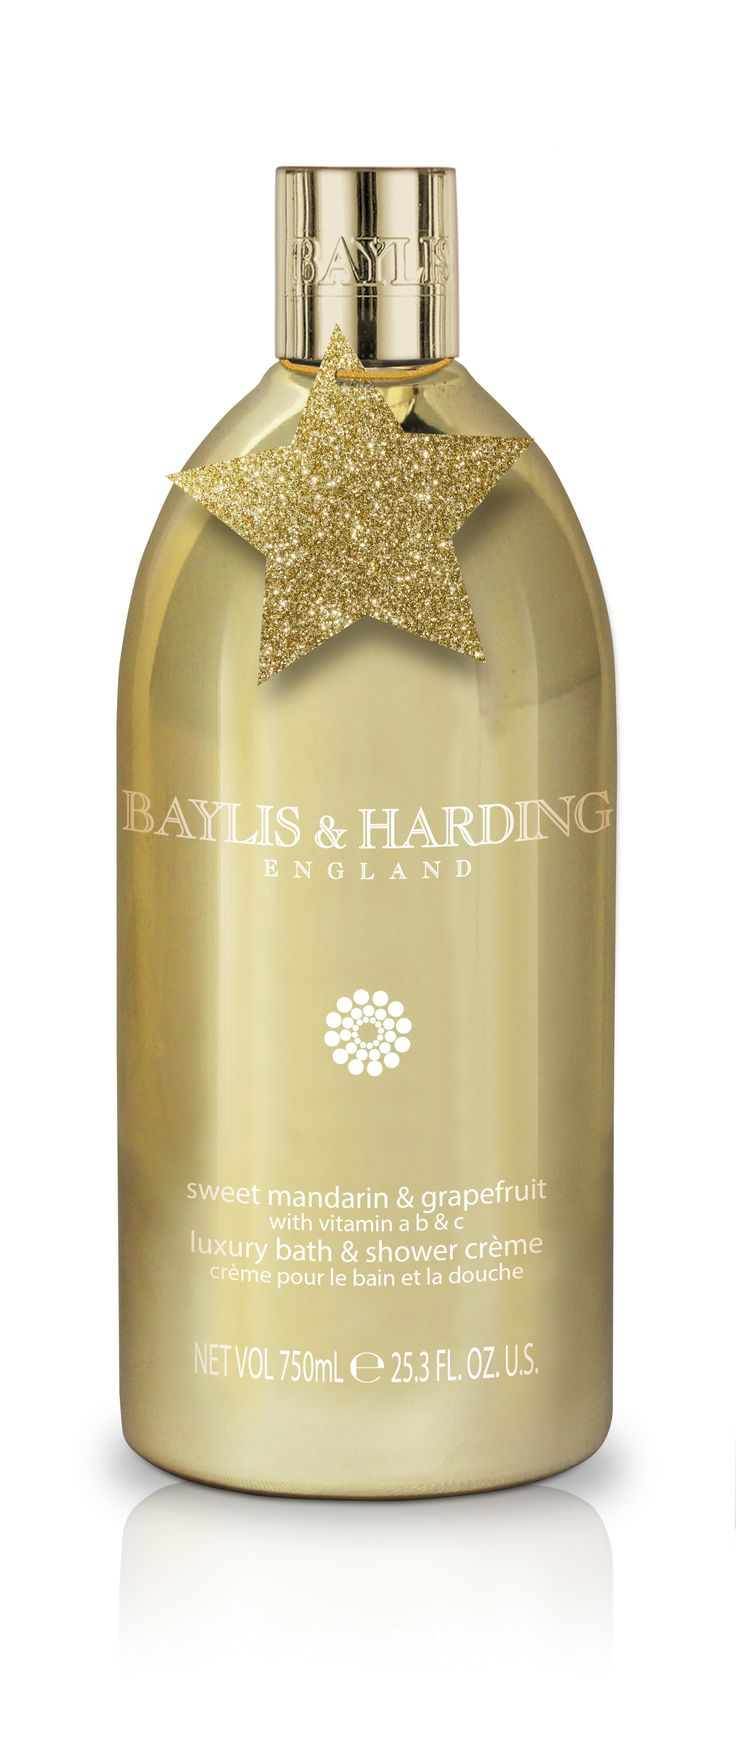 Sweet Mandarin & Grapefruit Luxurious Bath & Shower Crème #stockingfiller #Christmas #affordableluxury #gifts